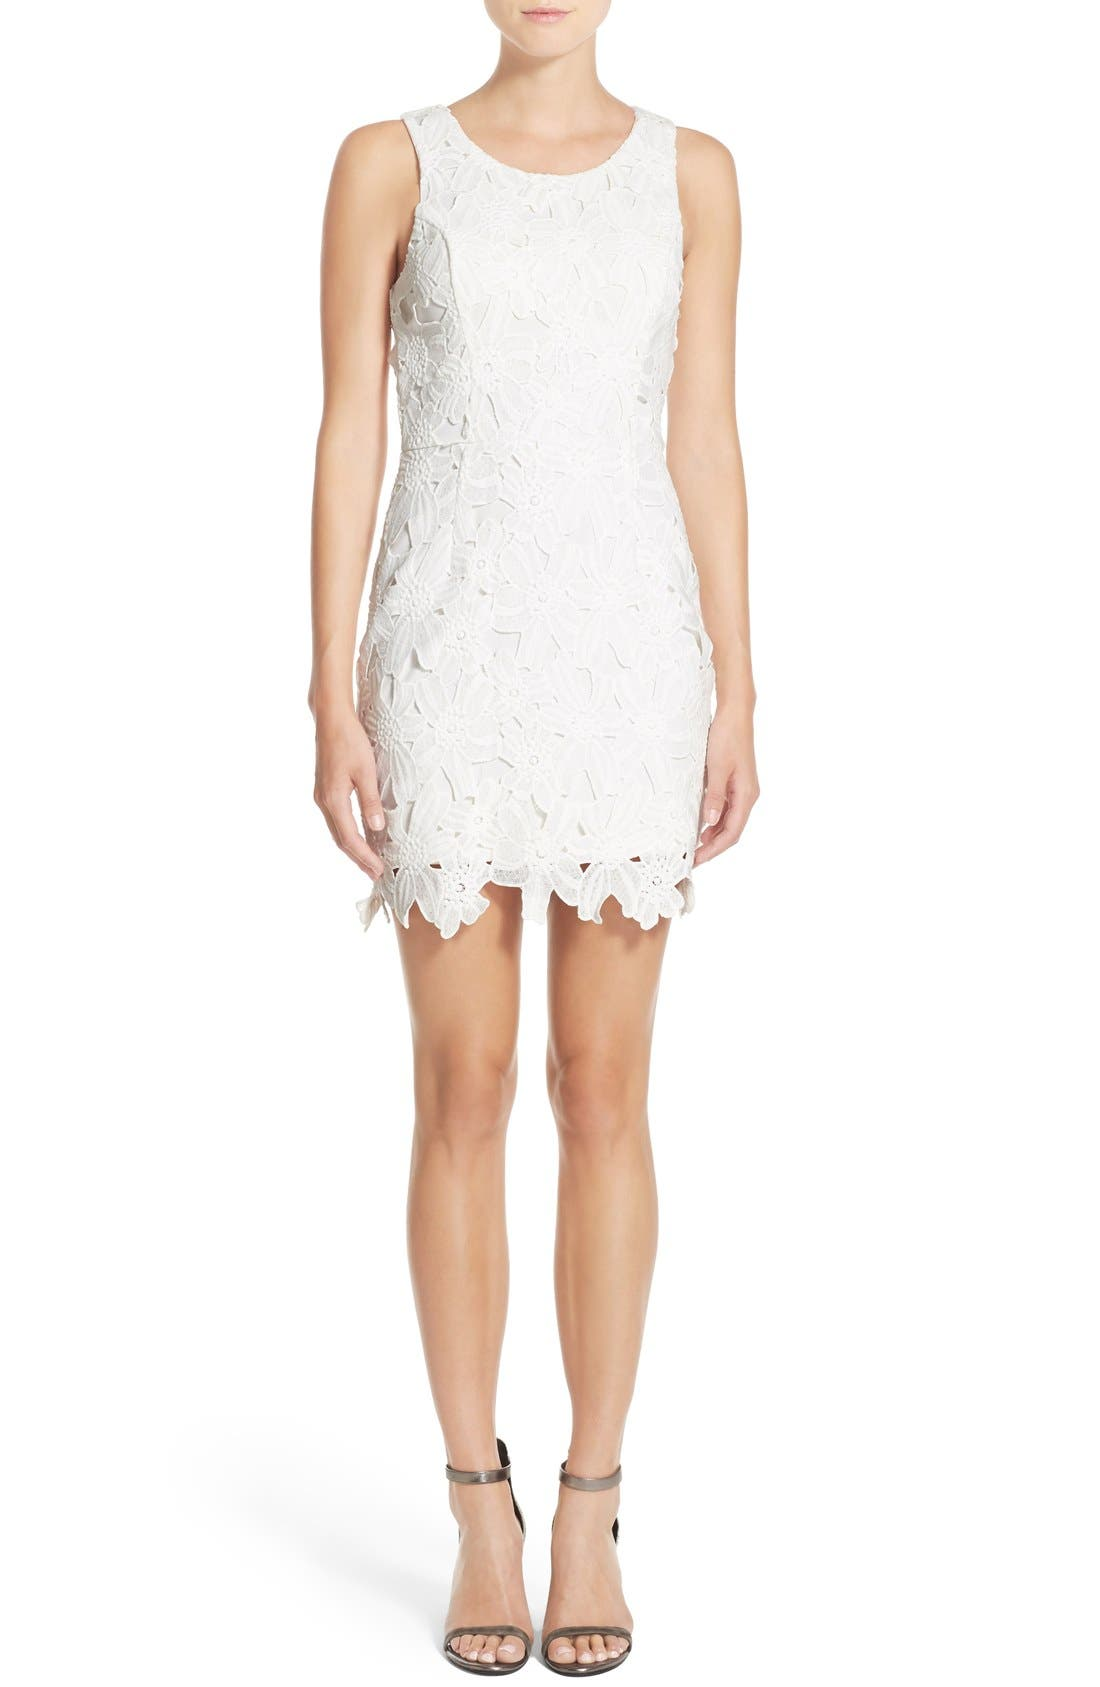 Alternate Image 1 Selected - ASTR the Label Textured Floral Body-Con Dress